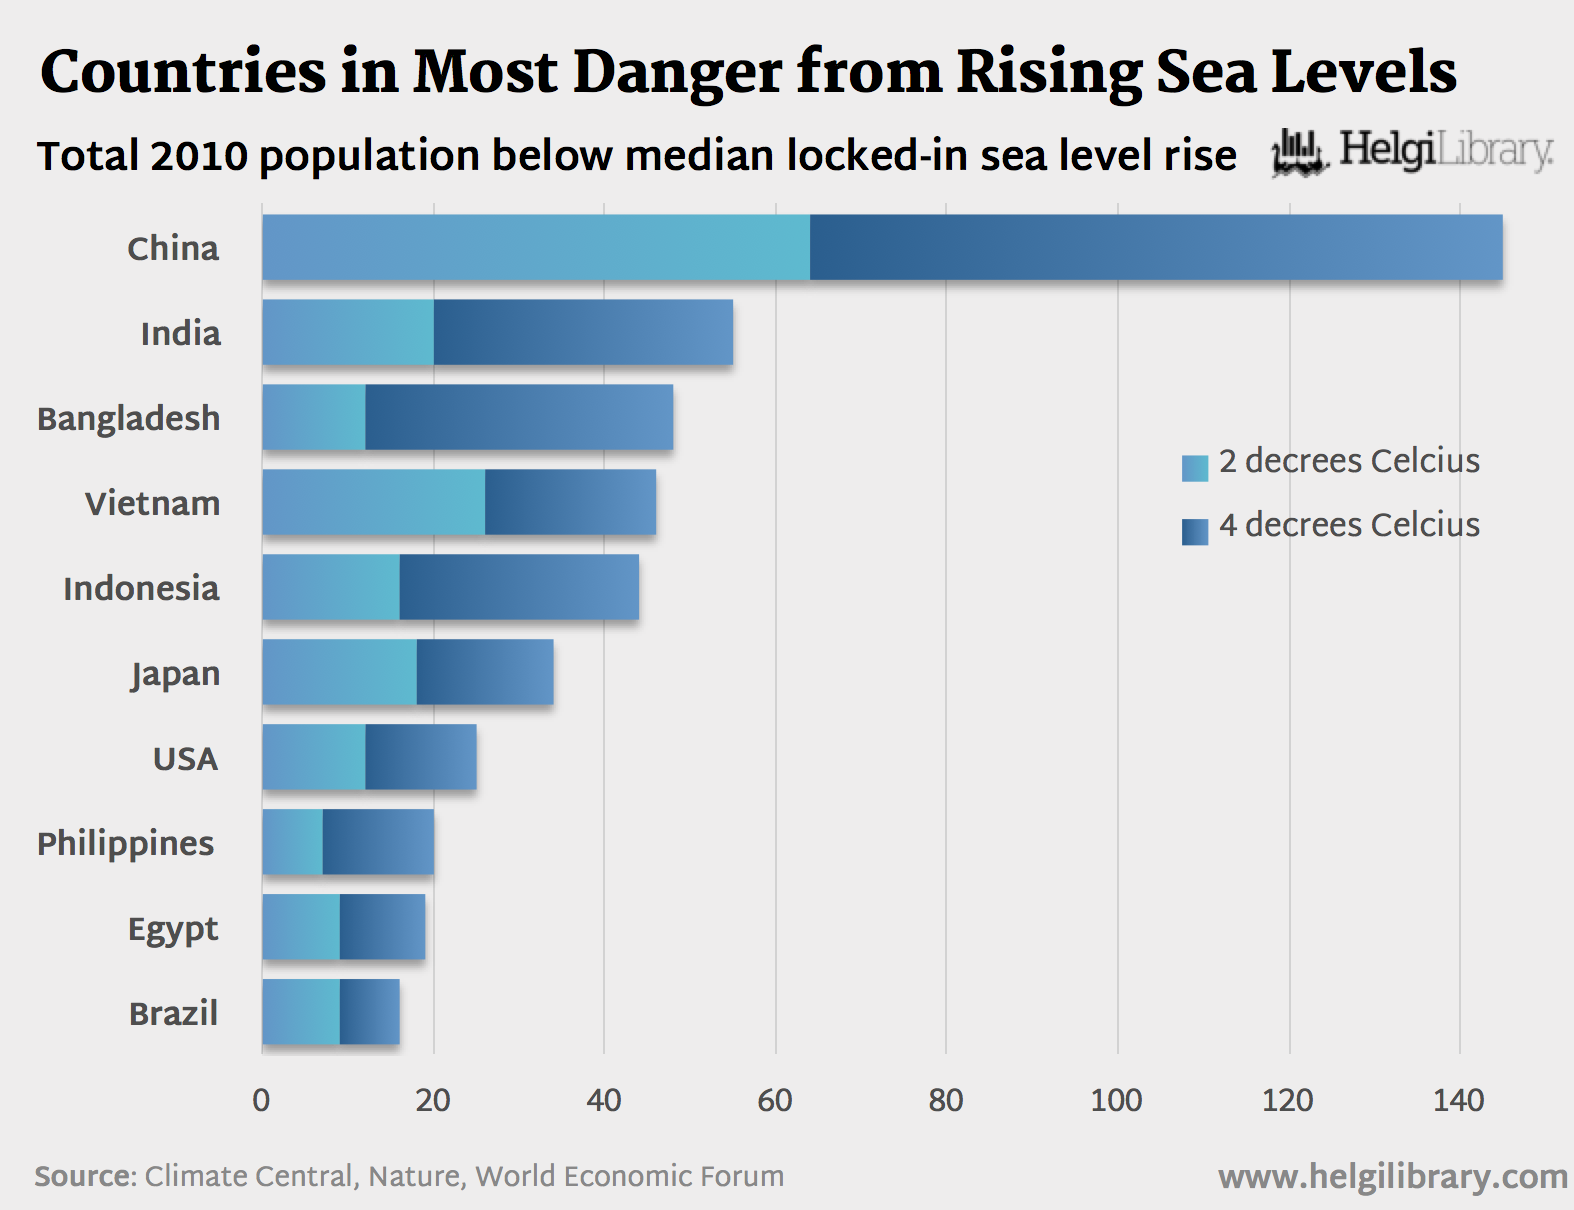 What Country is Most in Danger from Rising Sea Levels?